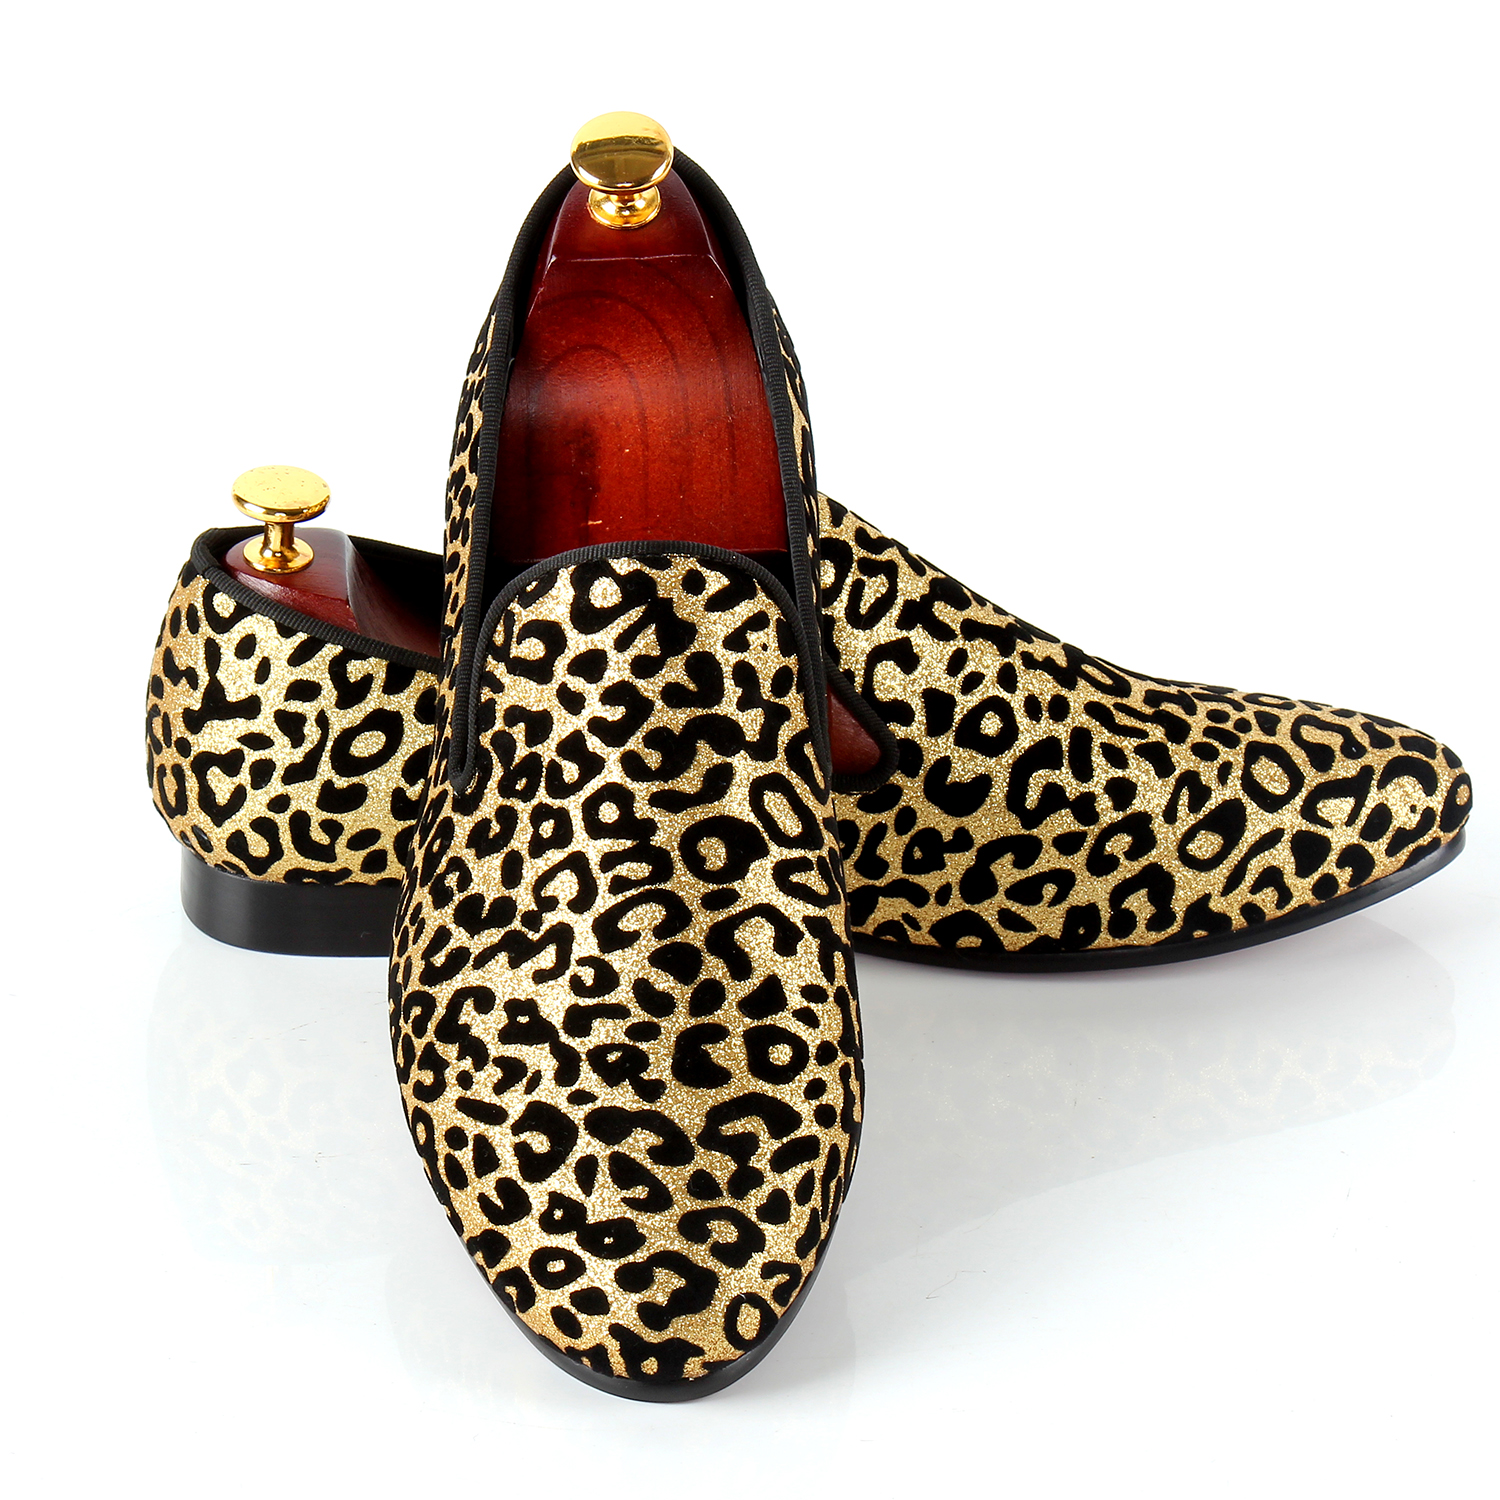 Leopard Printed Men Dress Shoes Slip On Wedding Shoes For Events Red Bottom Sole Loafers Free Drop Shipping Big Size Shoes